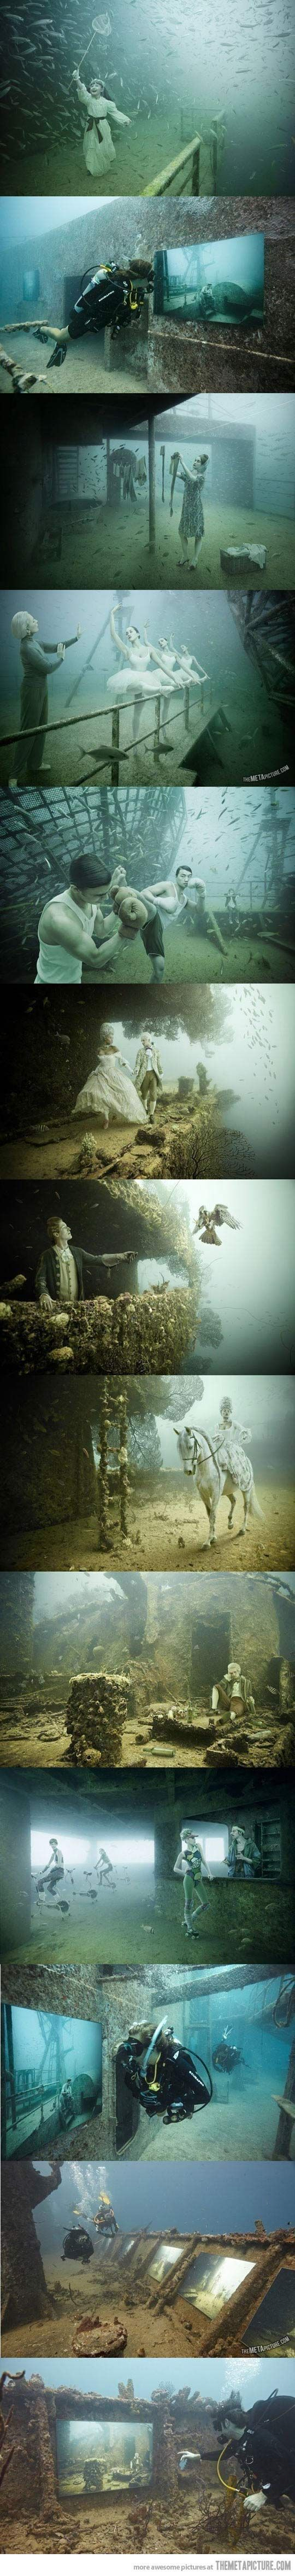 Underwater museum in Cancun - more uw love at www.dive.in -